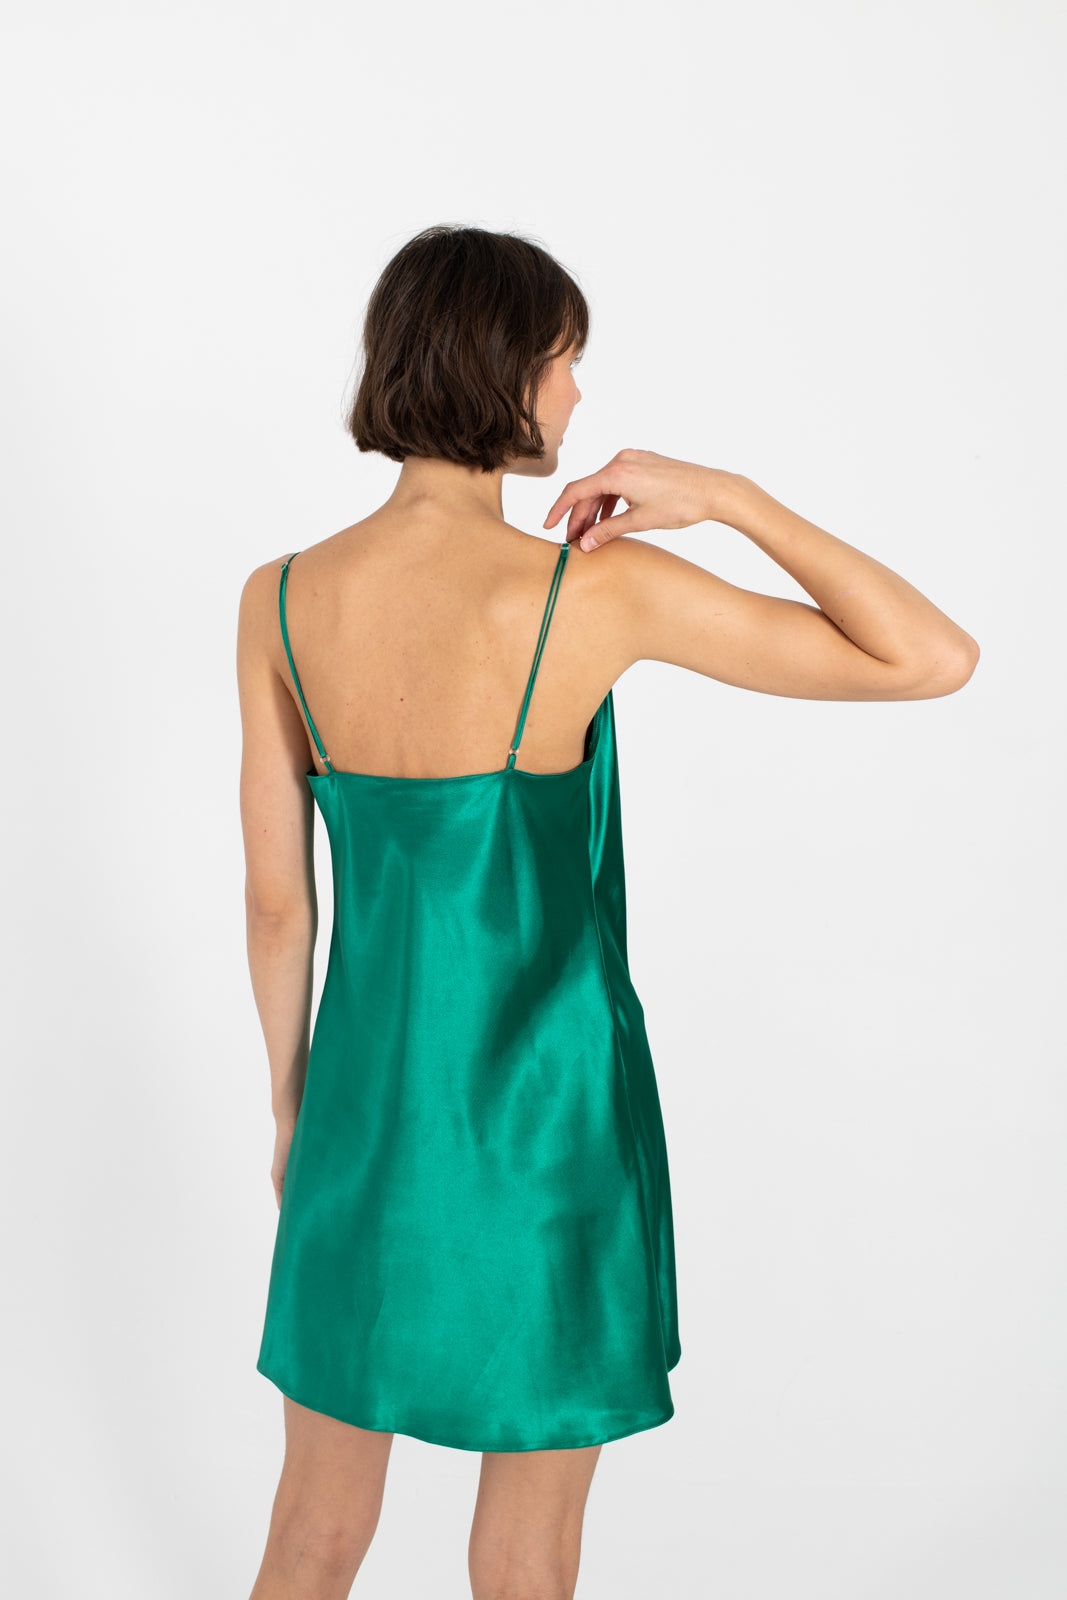 Le SLAP | NUDIST DEEP GREEN SLIP ON DRESS